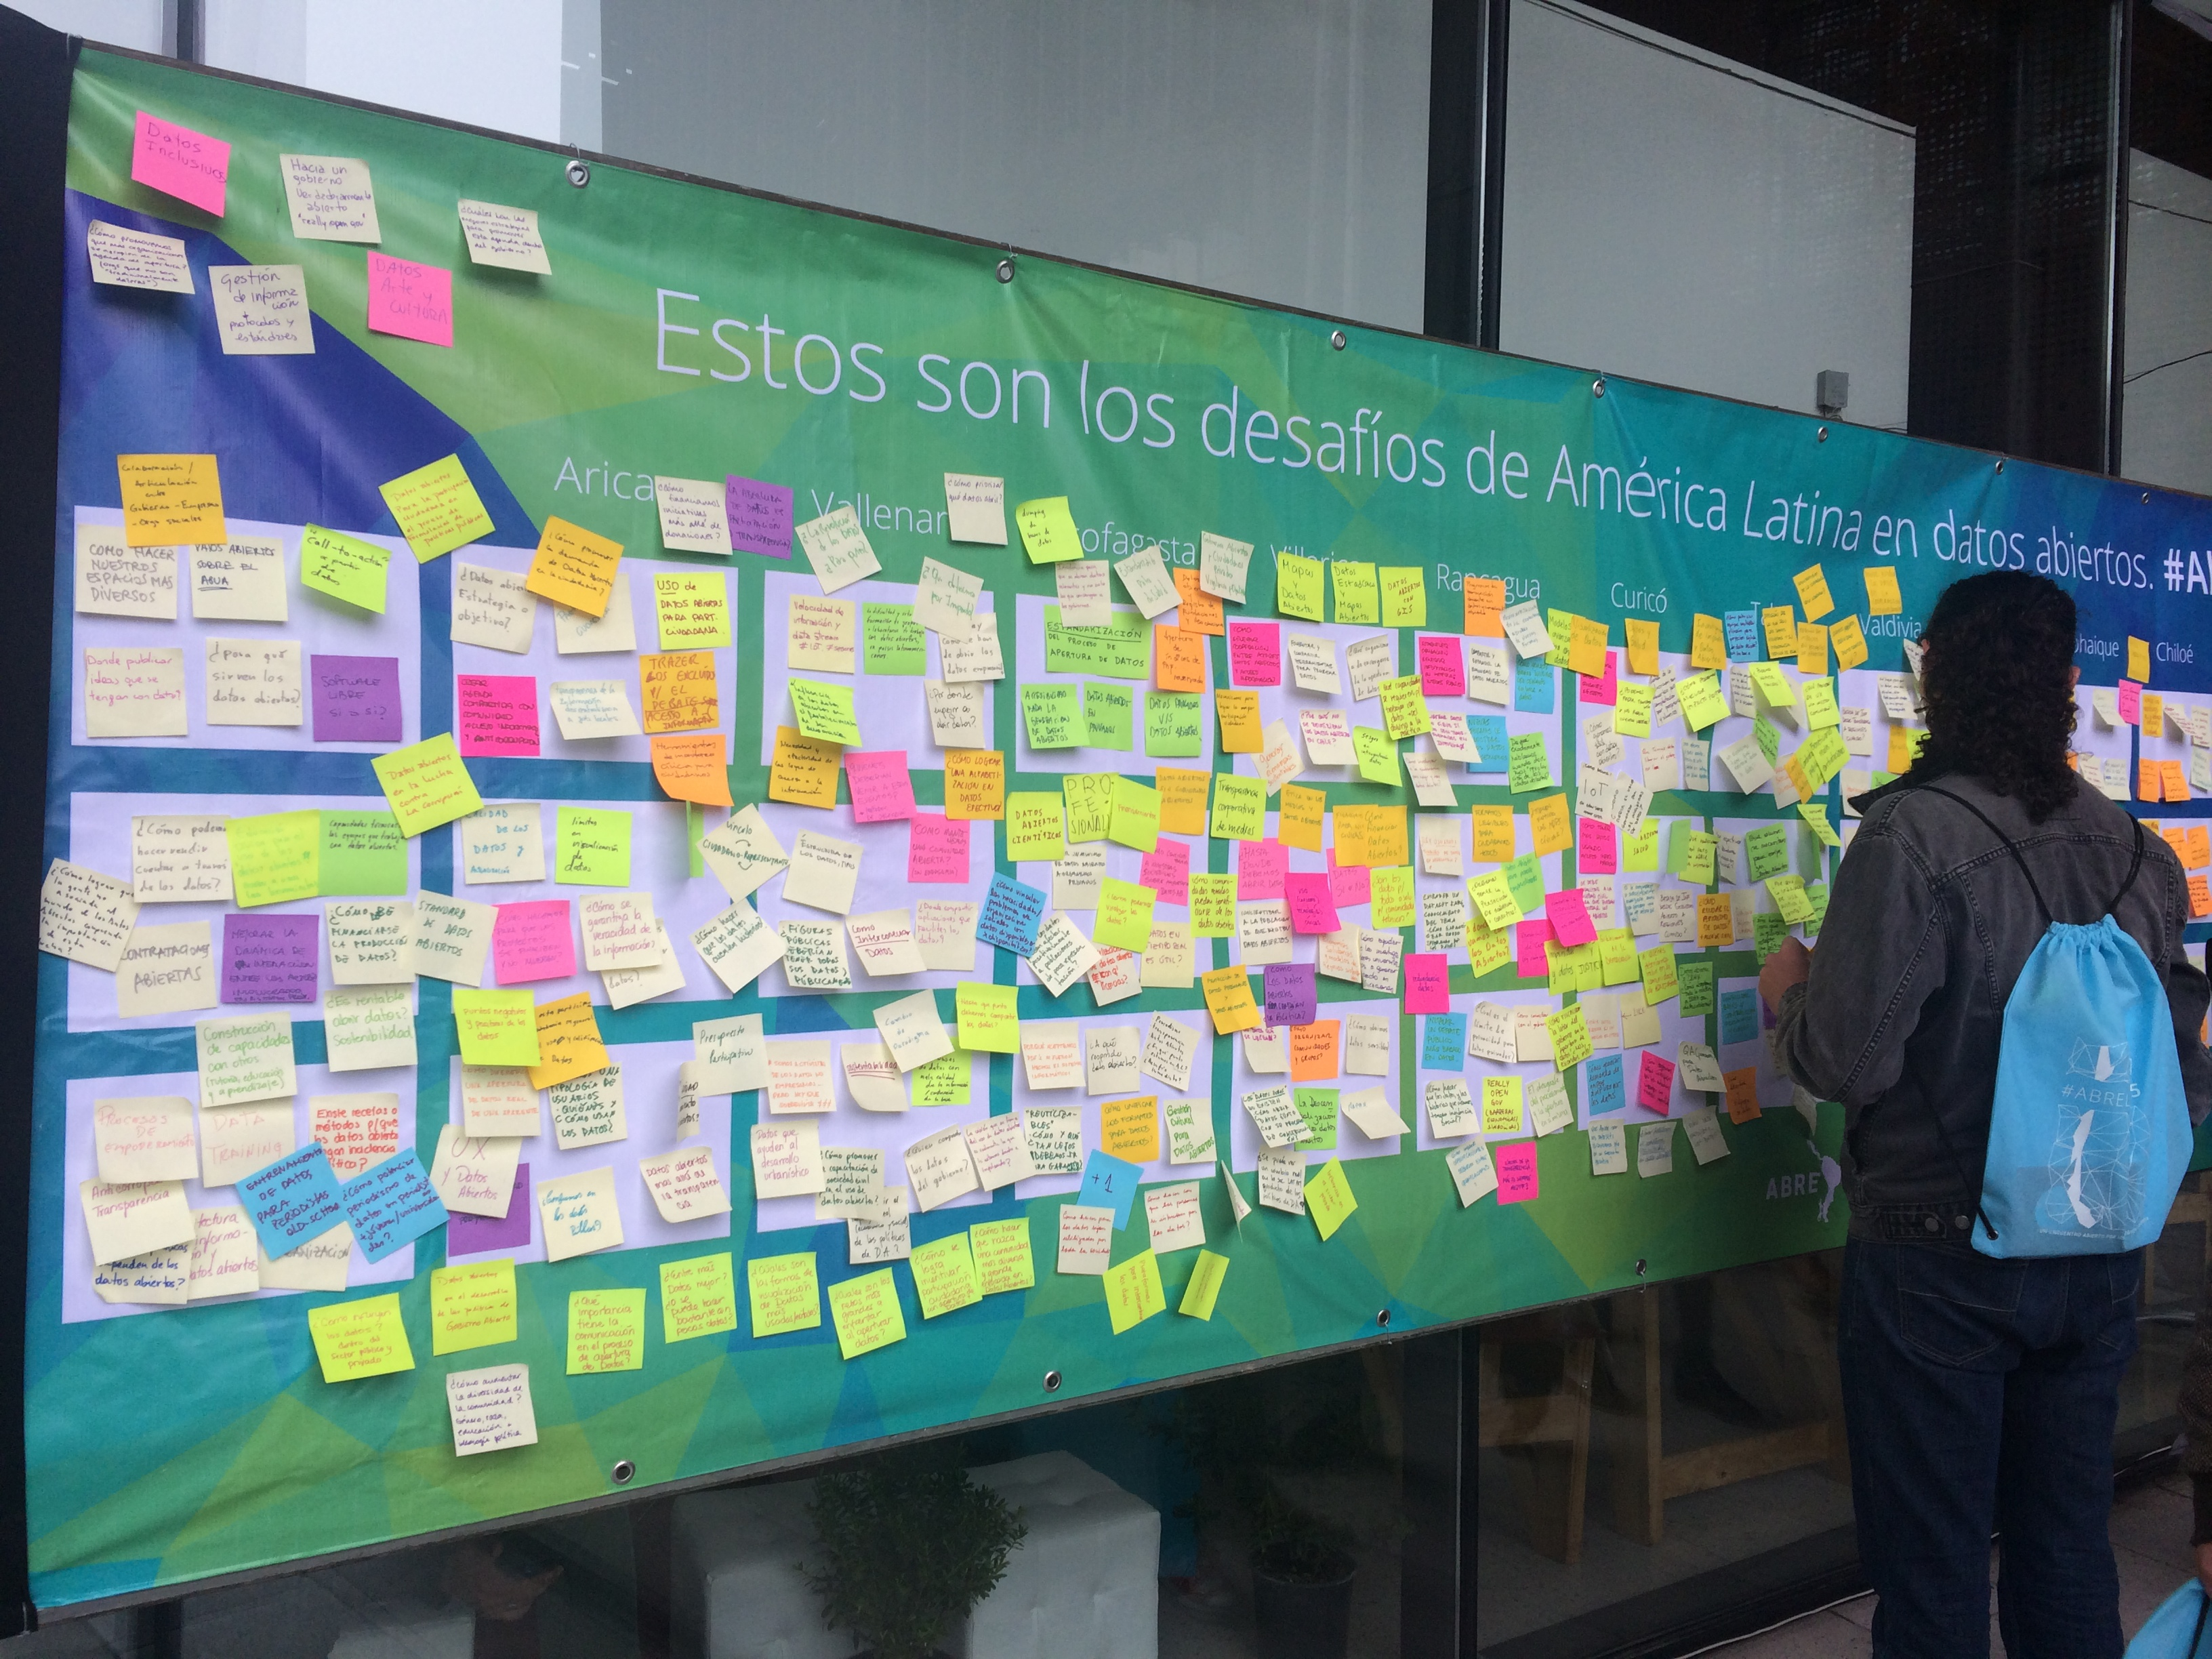 The Latin America open data community speaks loud